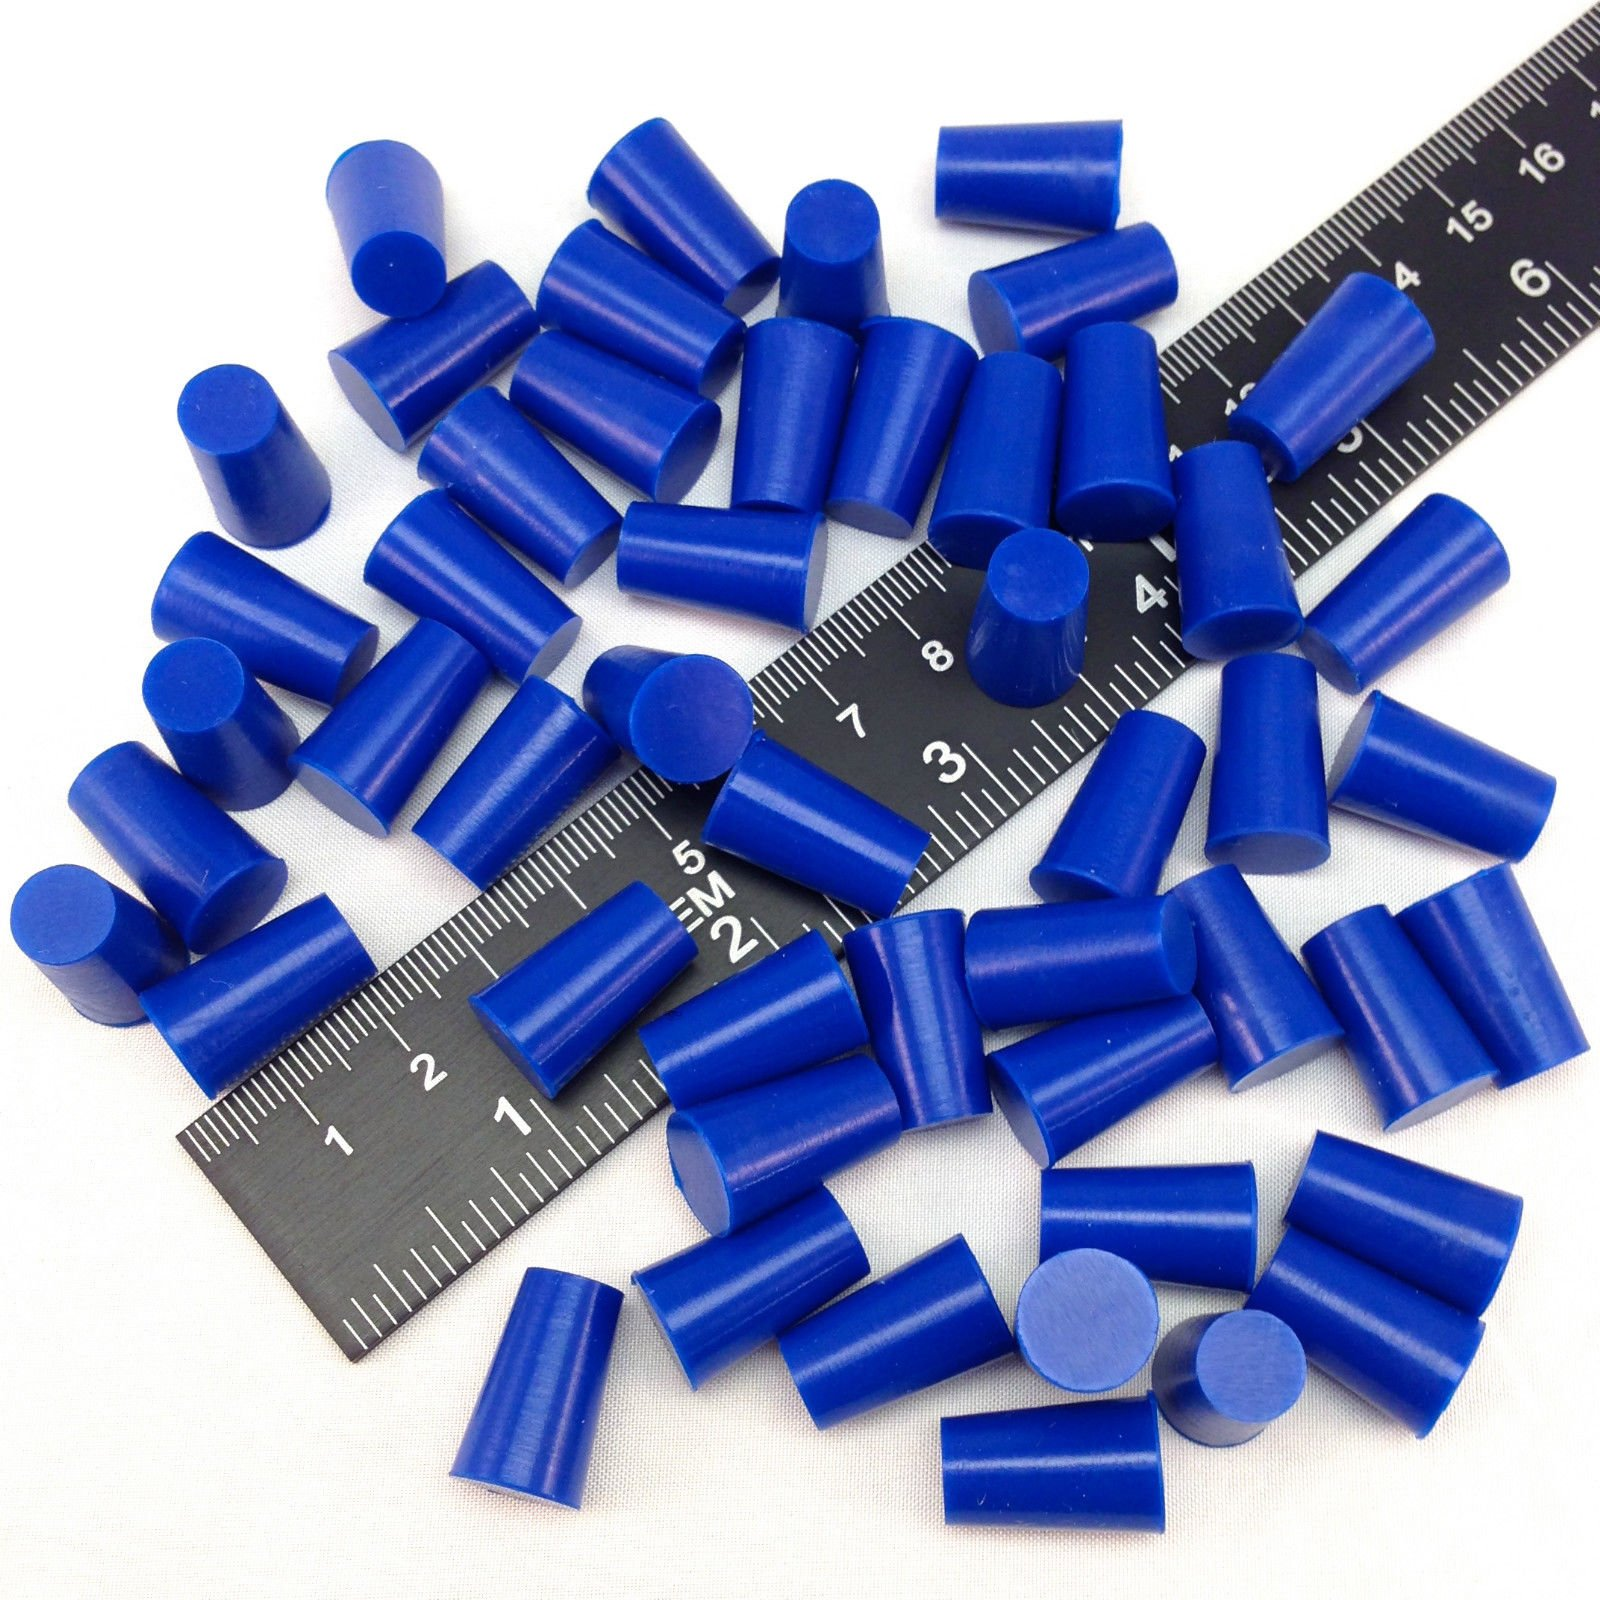 """(50) 11/32"""" X 7/16"""" High Temp Silicone Rubber Tapered Stopper Plugs for Powder Coating Custom Painting Masking Supplies"""